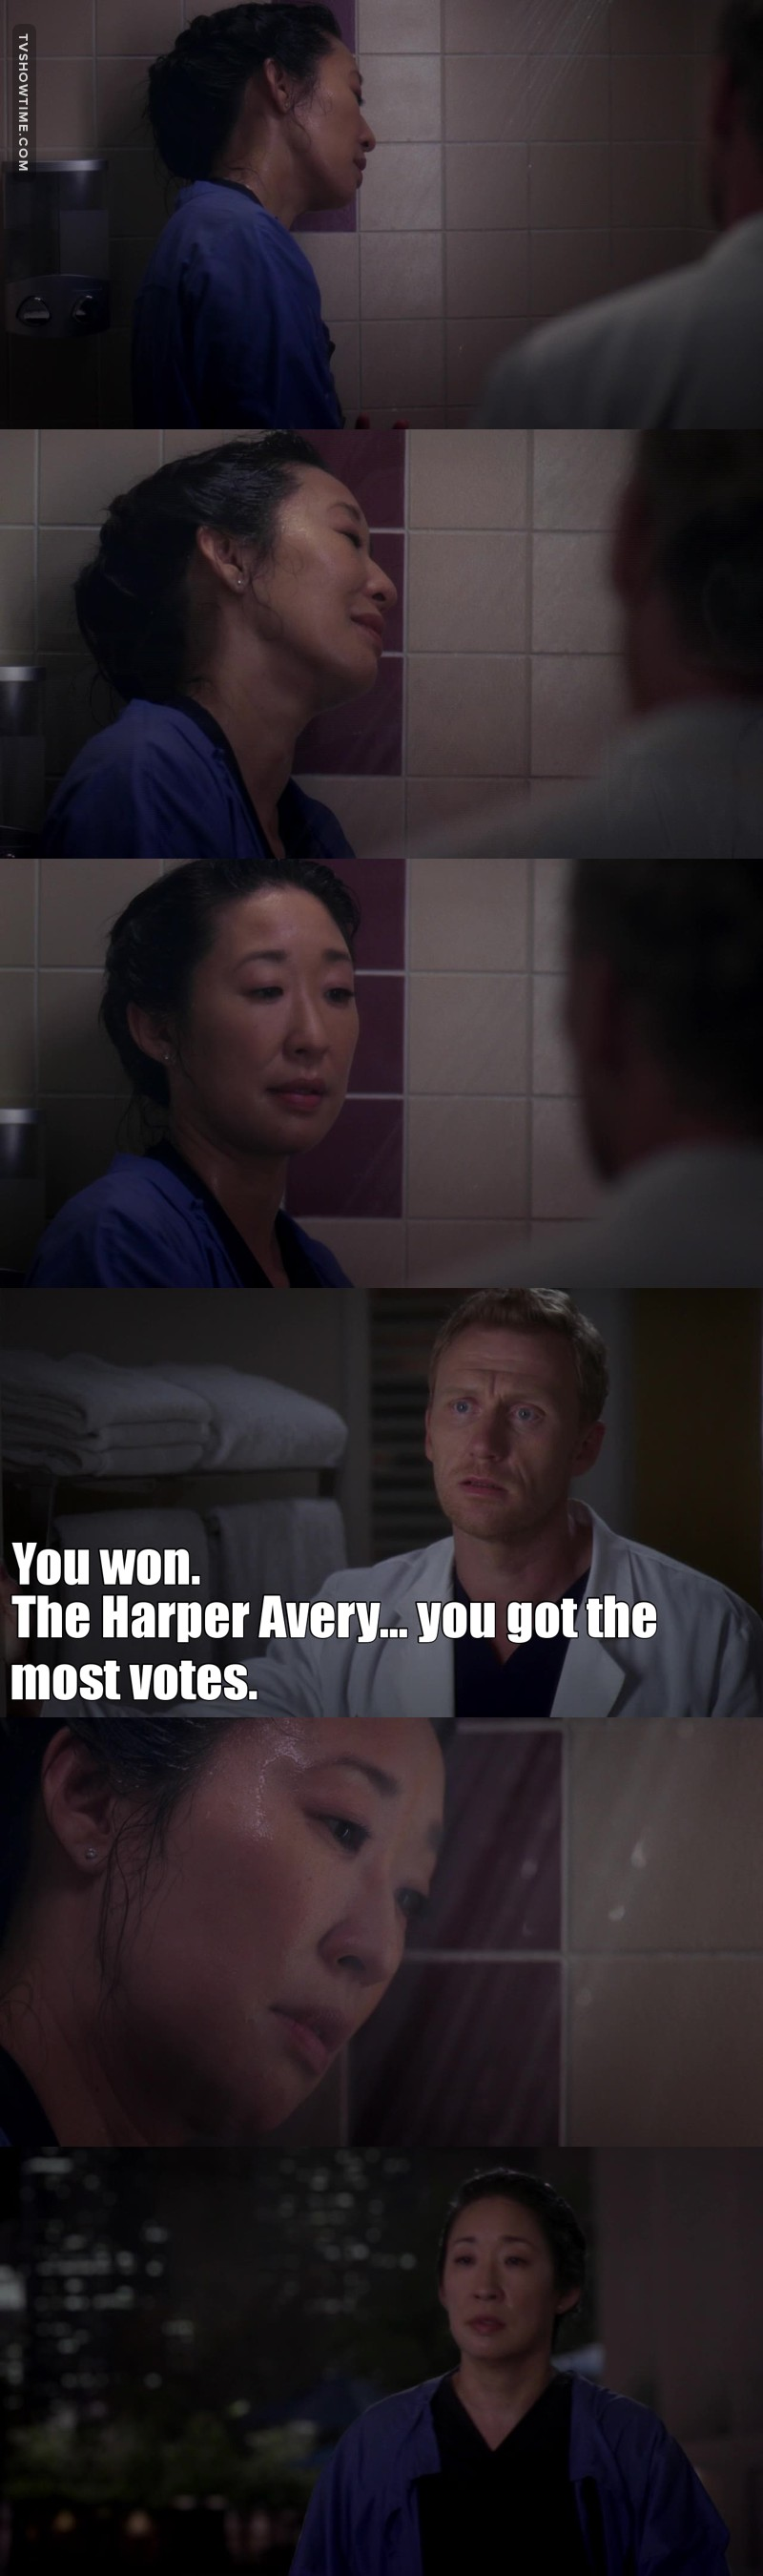 This is so not fair 😩☹️💔. She deserves everything great. SHE DESERVES ALL THE AWARDS 😭 FUCK THE HARPER AVERY.